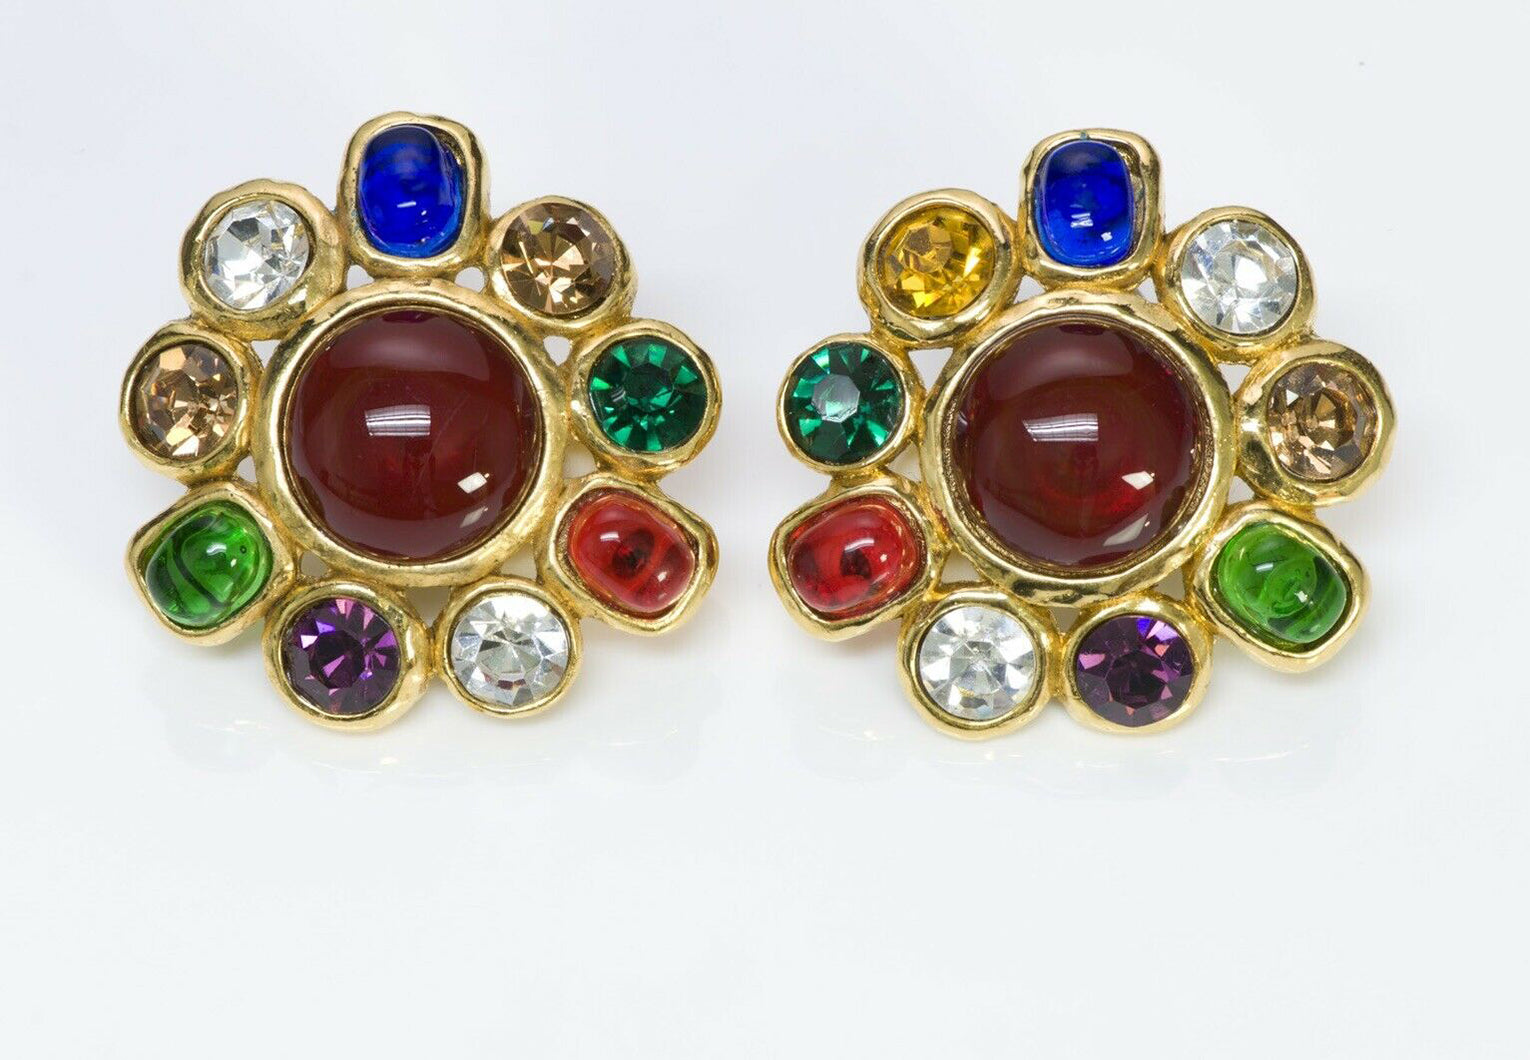 CHANEL PARIS 1980's Maison GRIPOIX Red Blue Green Glass Crystal Earrings